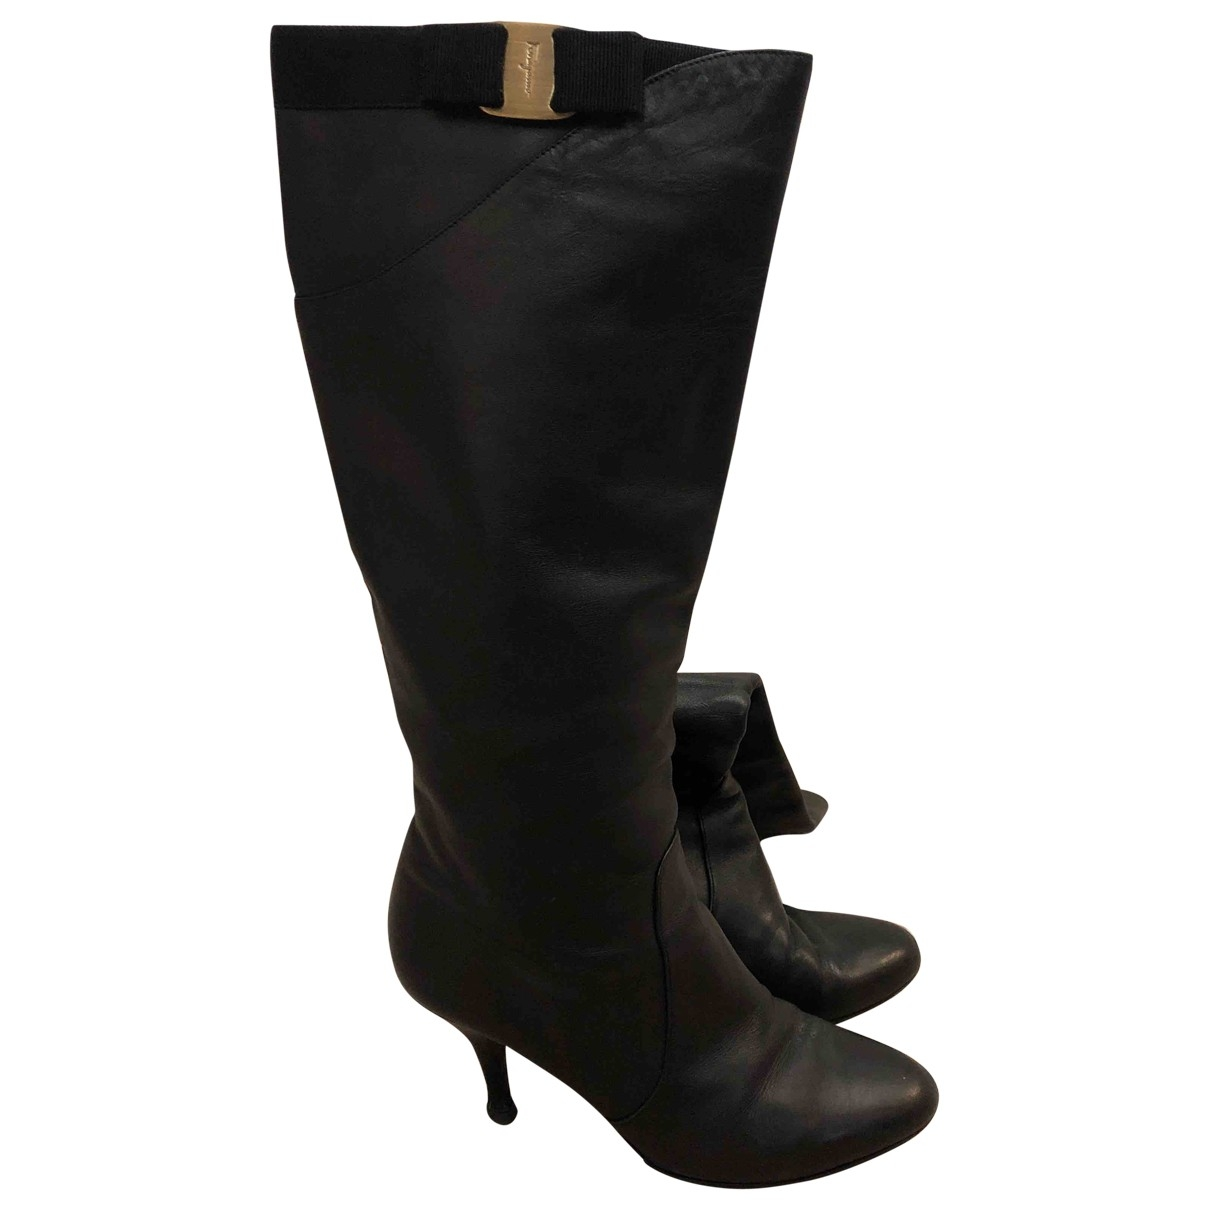 Salvatore Ferragamo \N Black Leather Boots for Women 6.5 US